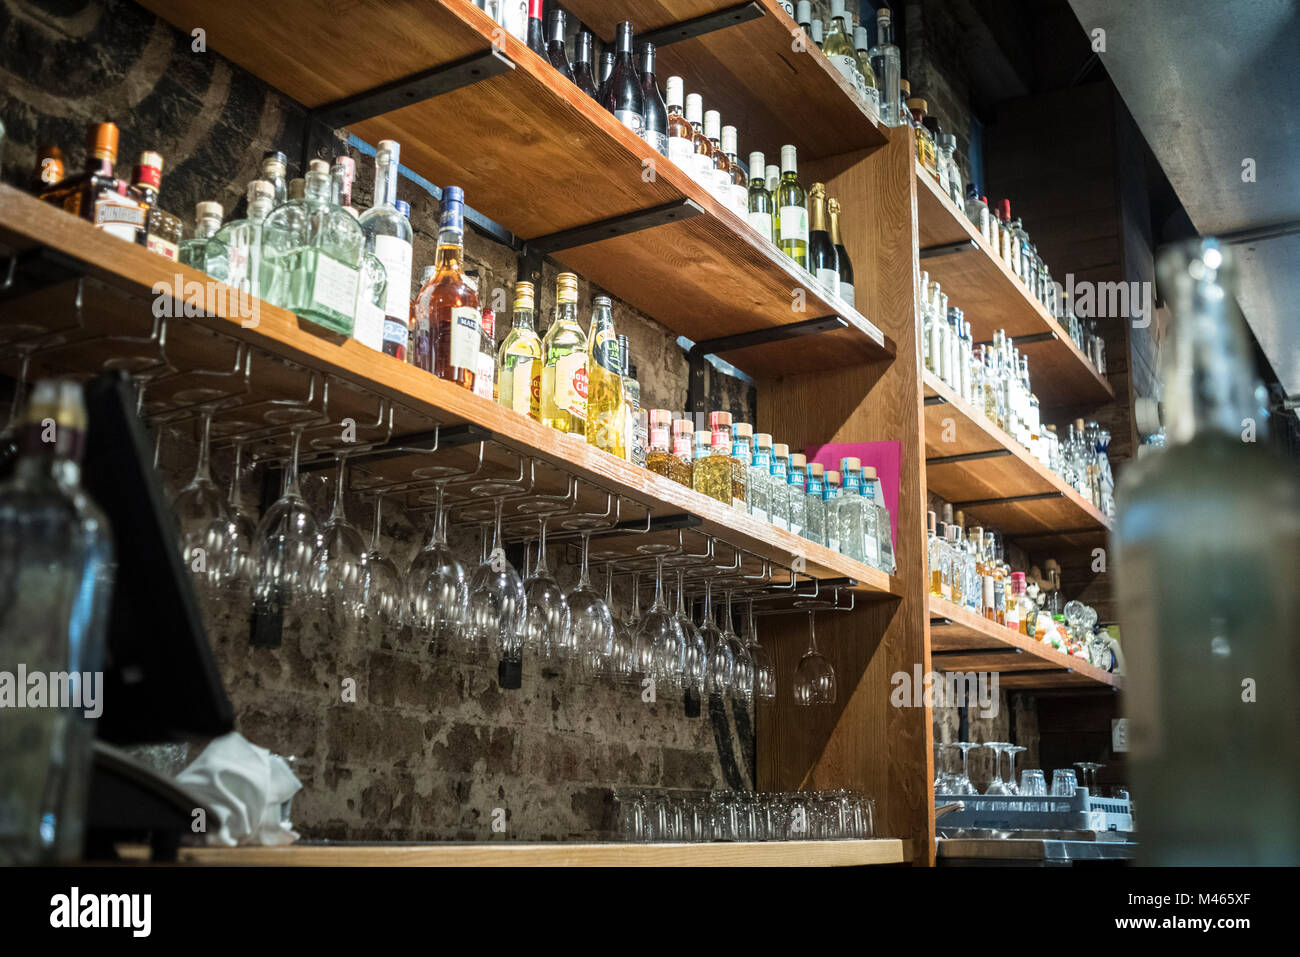 Bottles and glasses at the bar in Mejico, Sydney. - Stock Image